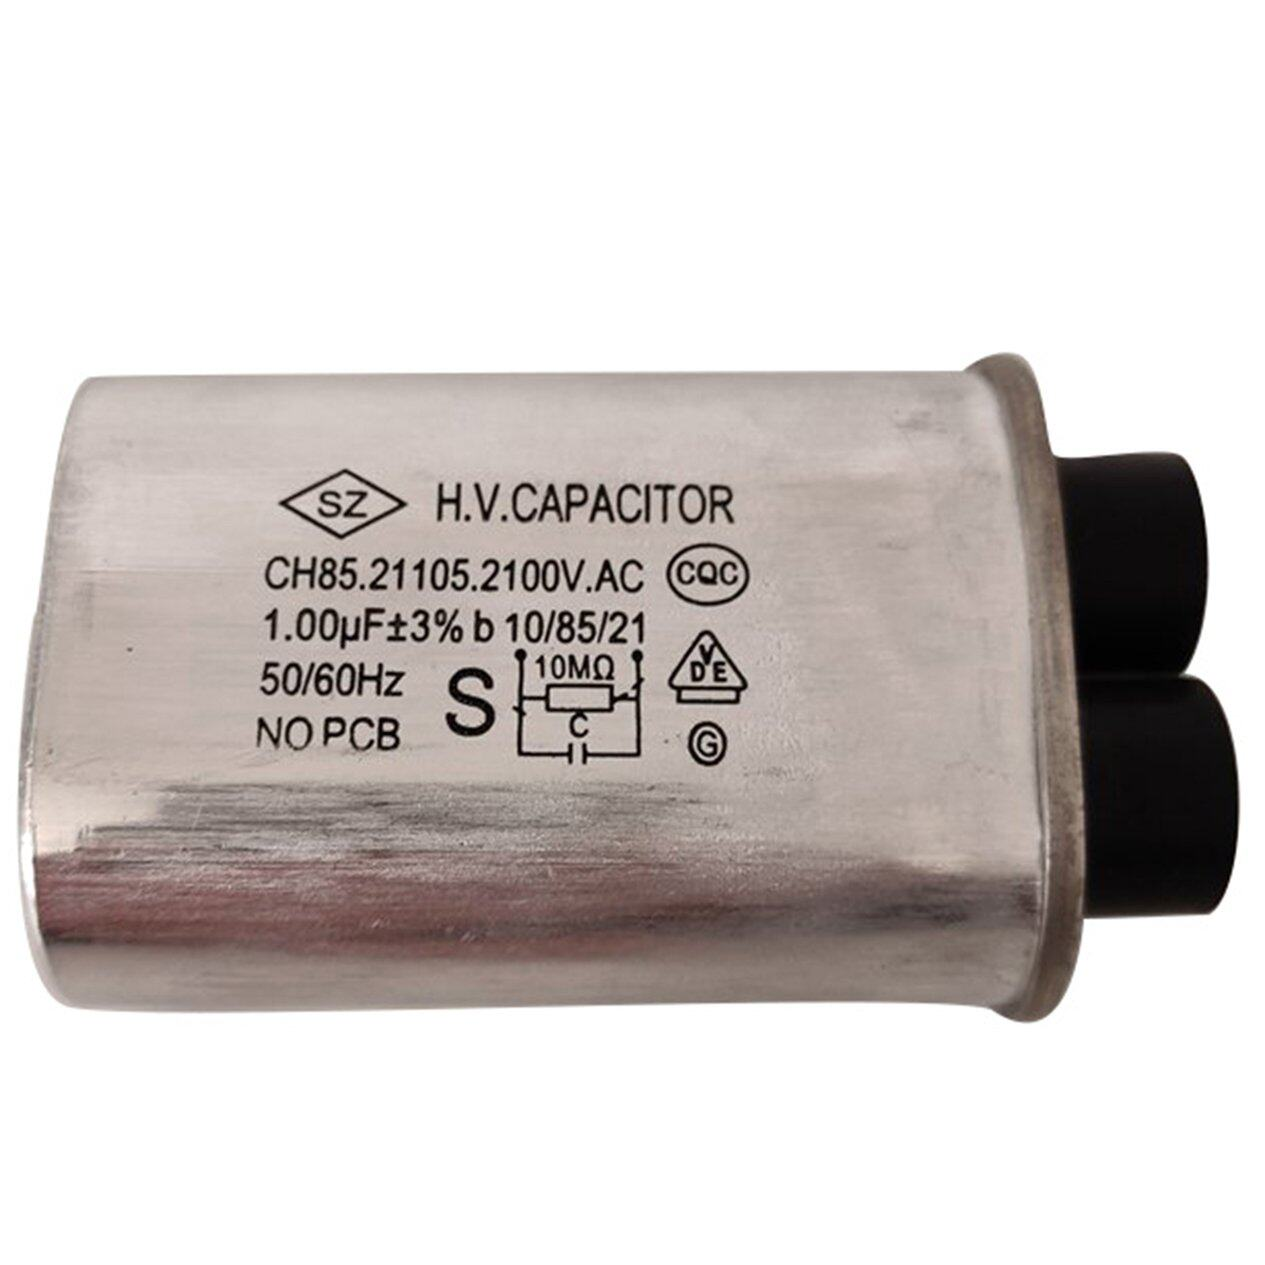 Microwave Oven Capacitor 0.90uF CH85 2100V AC High Voltage CAPACITOR NEW